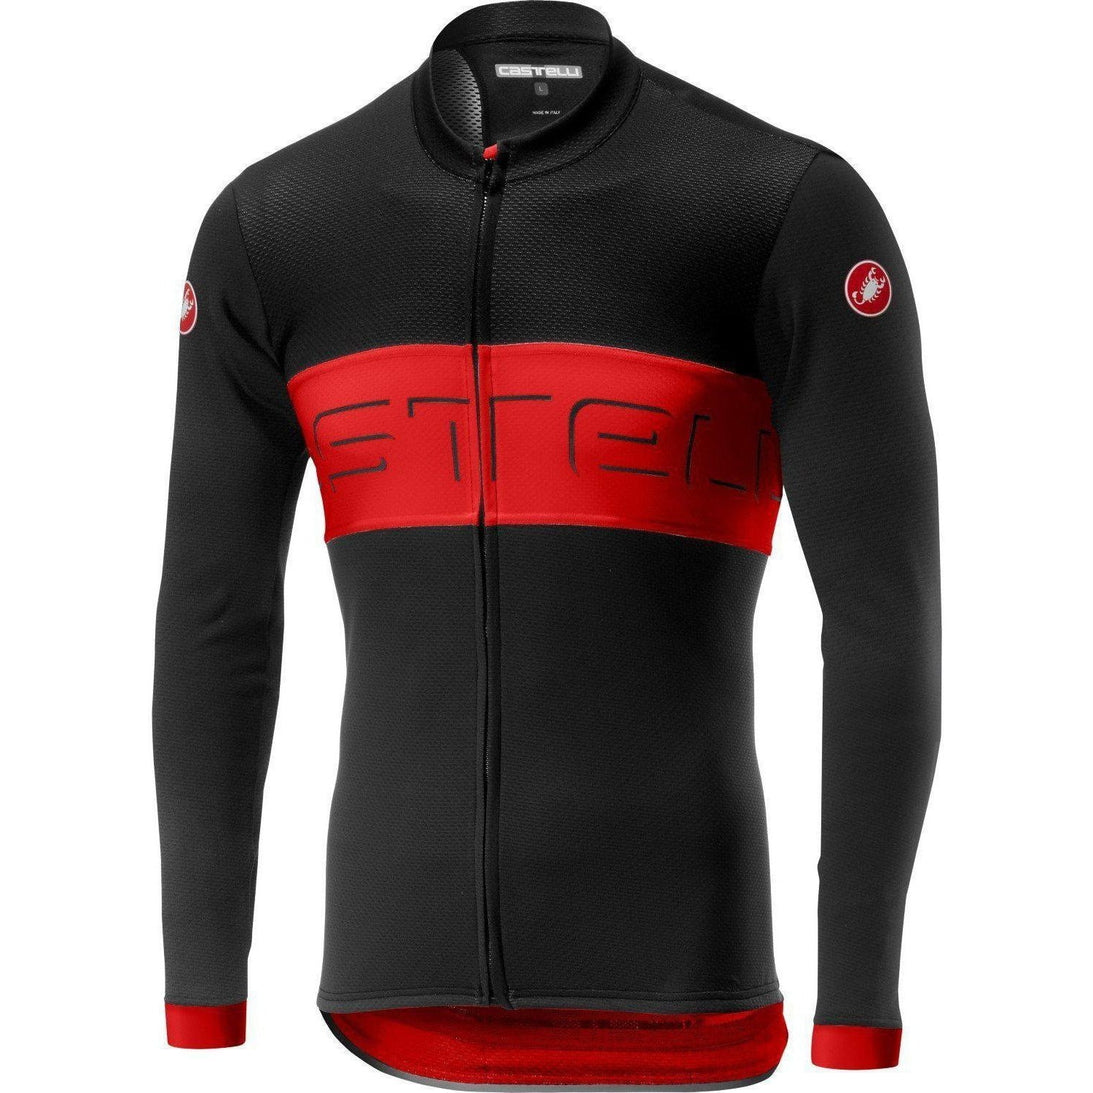 Castelli-Castelli Prologo VI Longsleeved Jersey-Black/Red/Black-S-CS190162312-saddleback-elite-performance-cycling